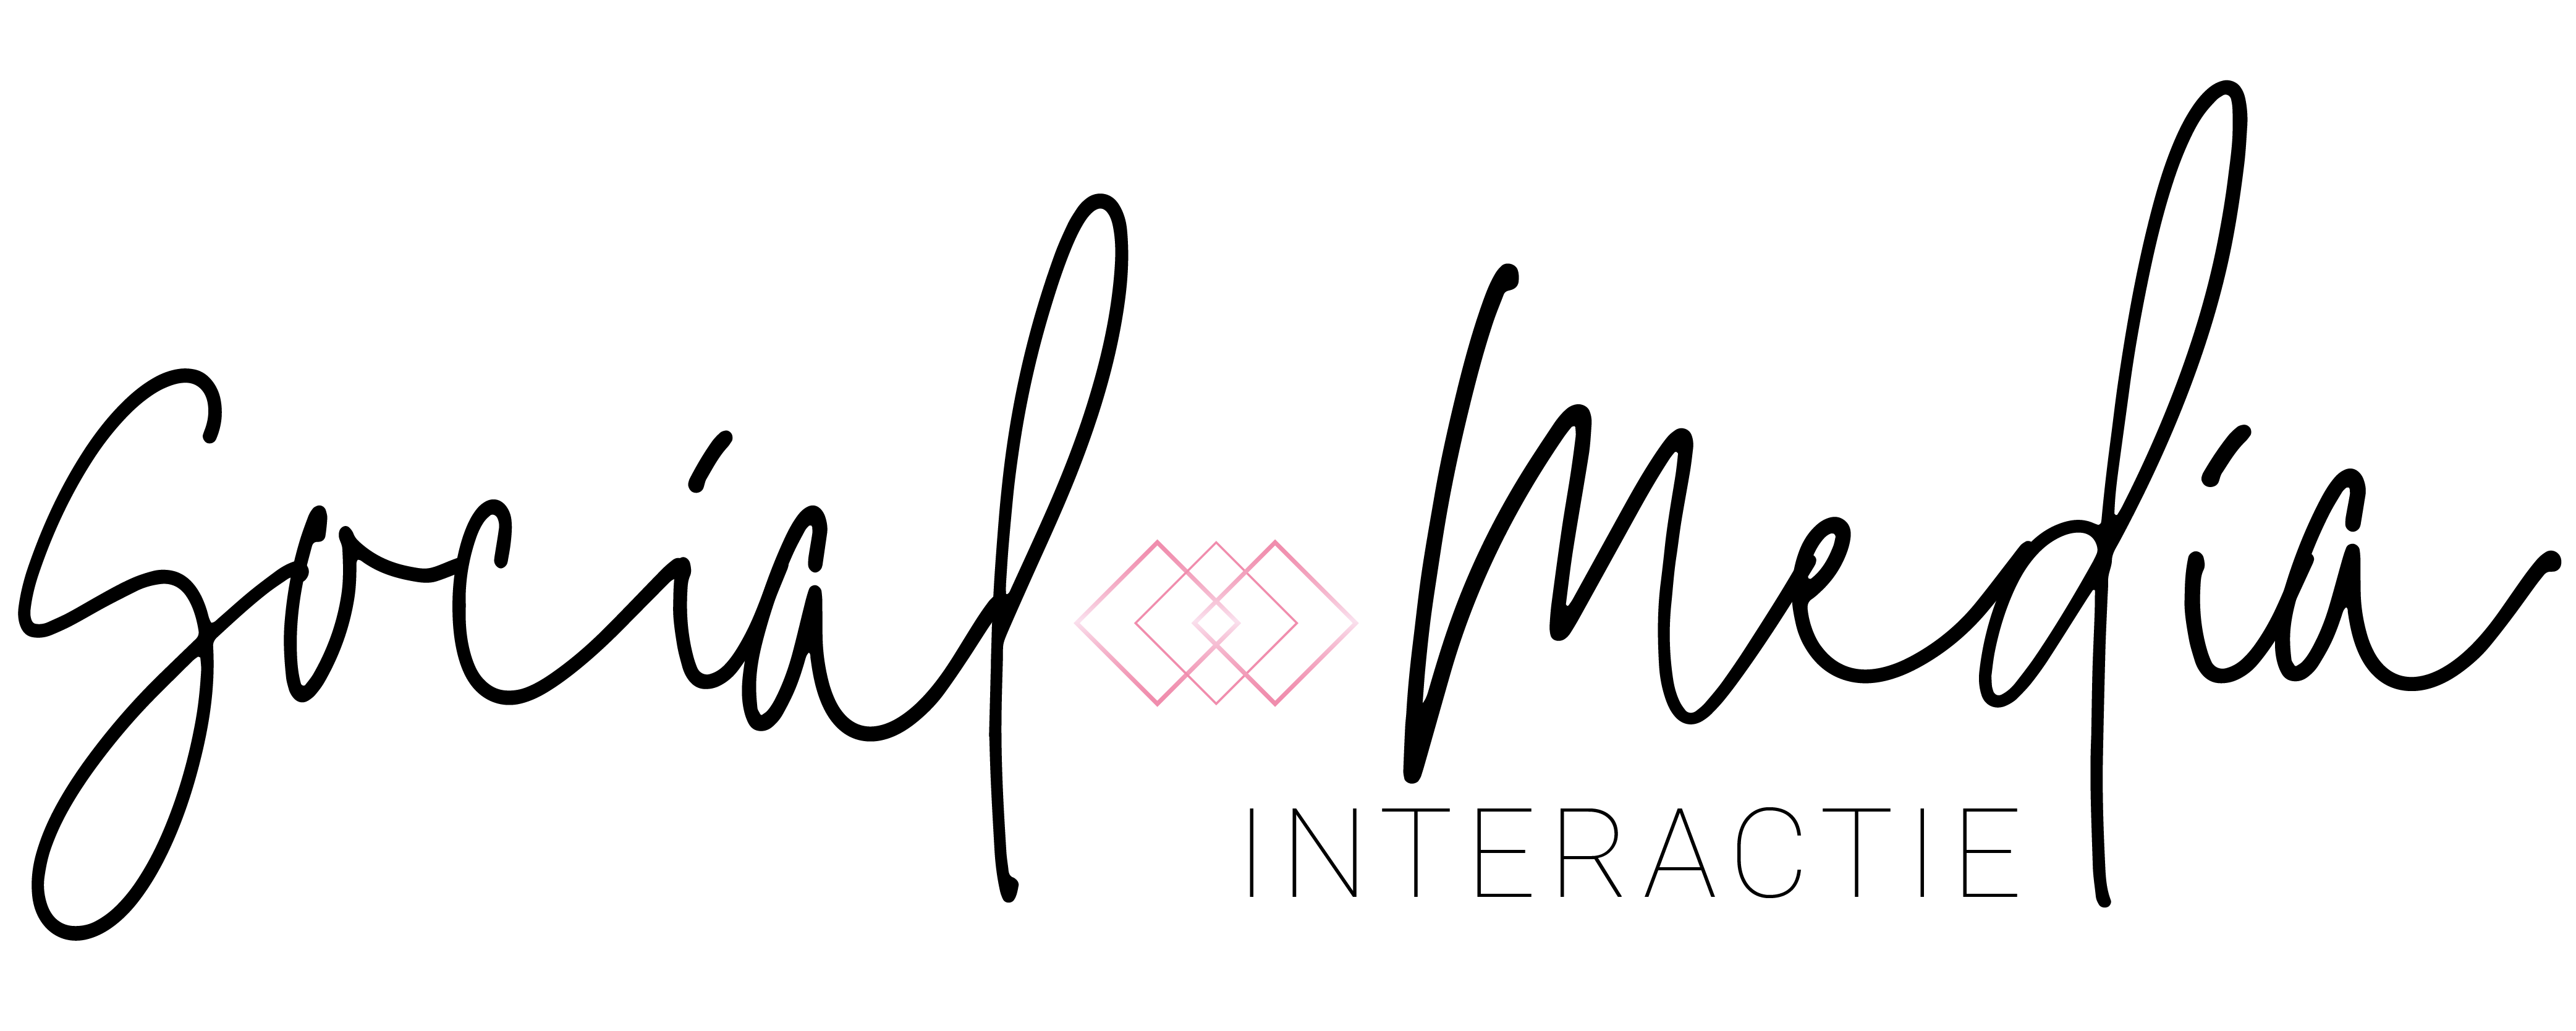 Social Media Interactie Logo Design | Fiona Gobbo Creative | Brand design for a rebranding for an online marketing agency that focuses on female entrepreneurs